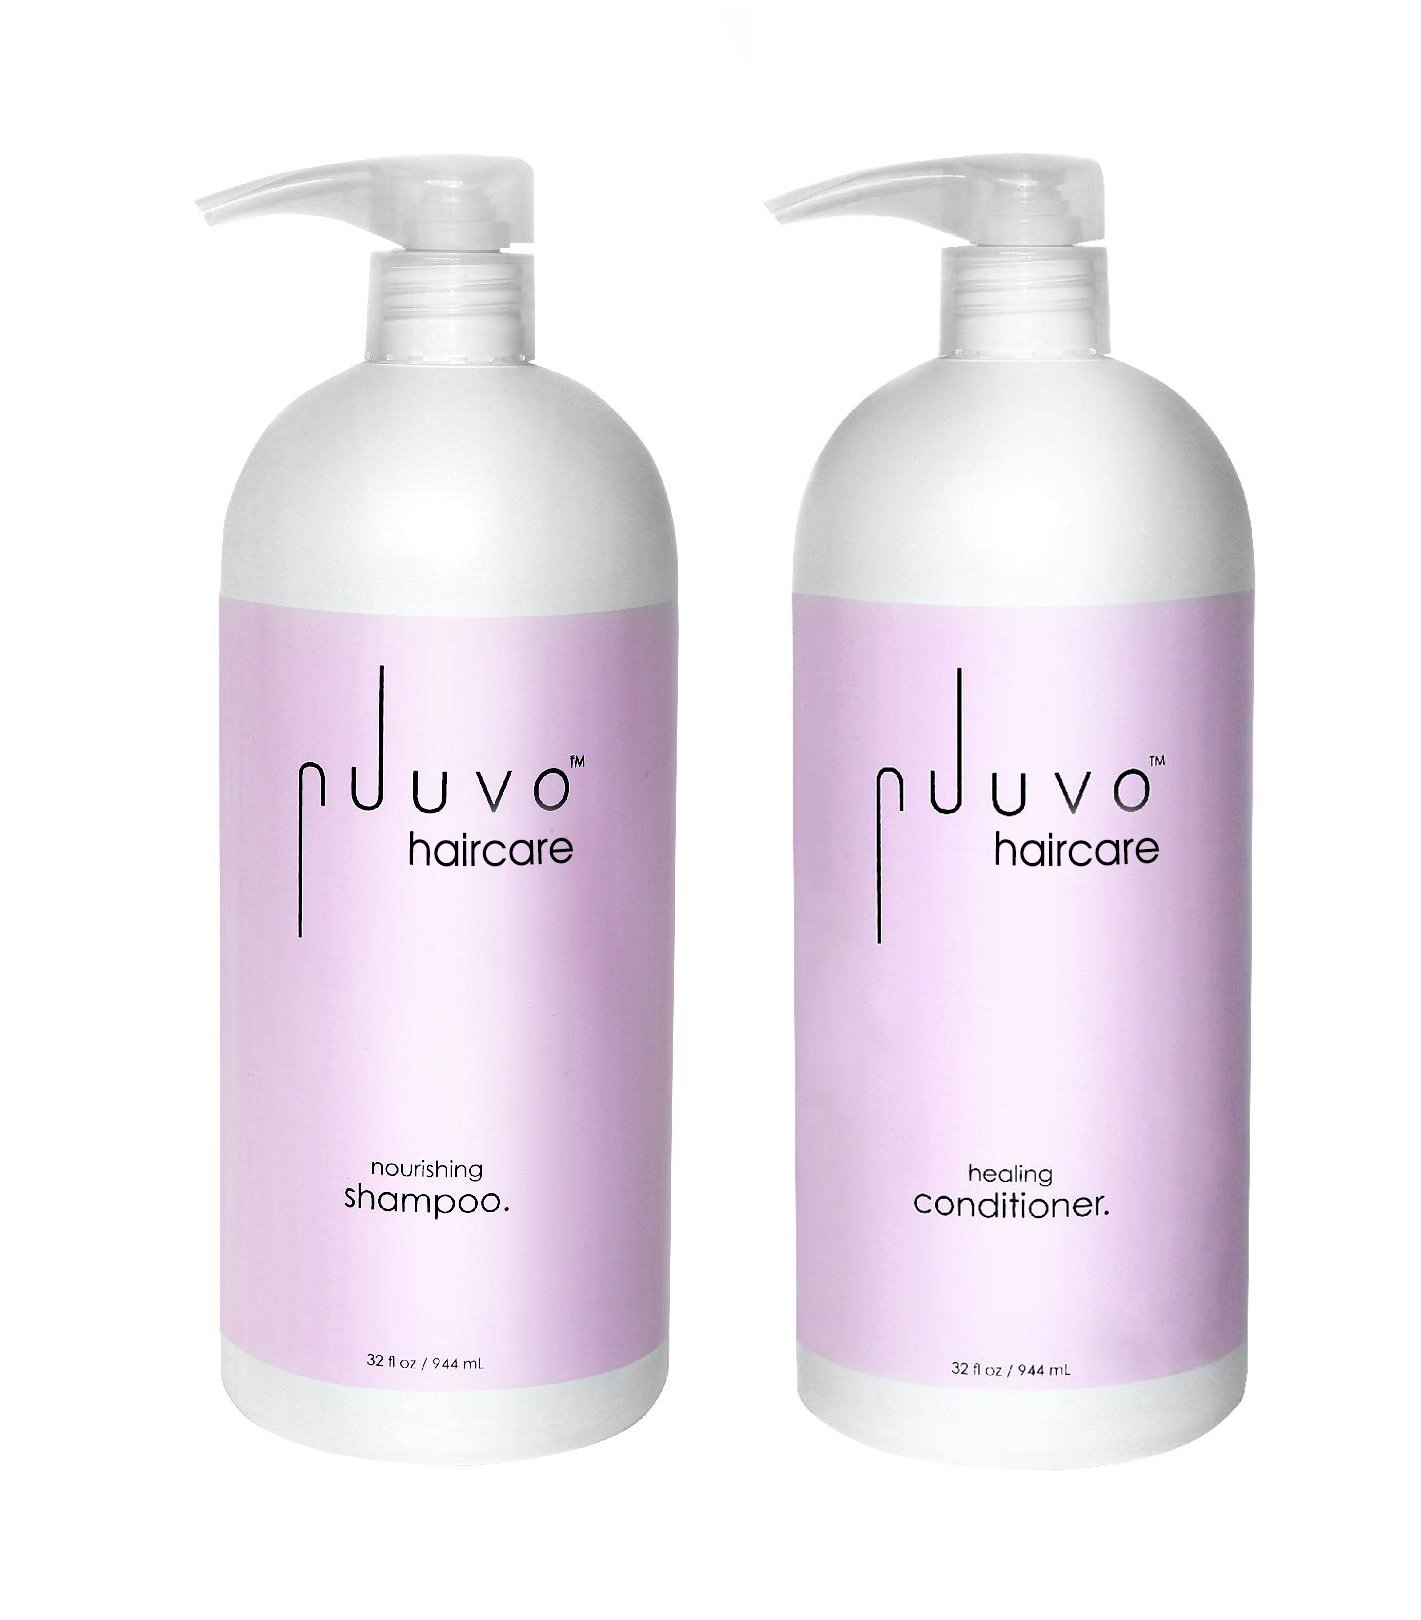 Jumbo Cleanse and Condition Duo by Nuuvo Haircare - Nourishing Shampoo 33 Ounce / 1 Liter + Healing Conditioner 33 Ounce / 1 Liter - Keratin Infused + Sulfate Free